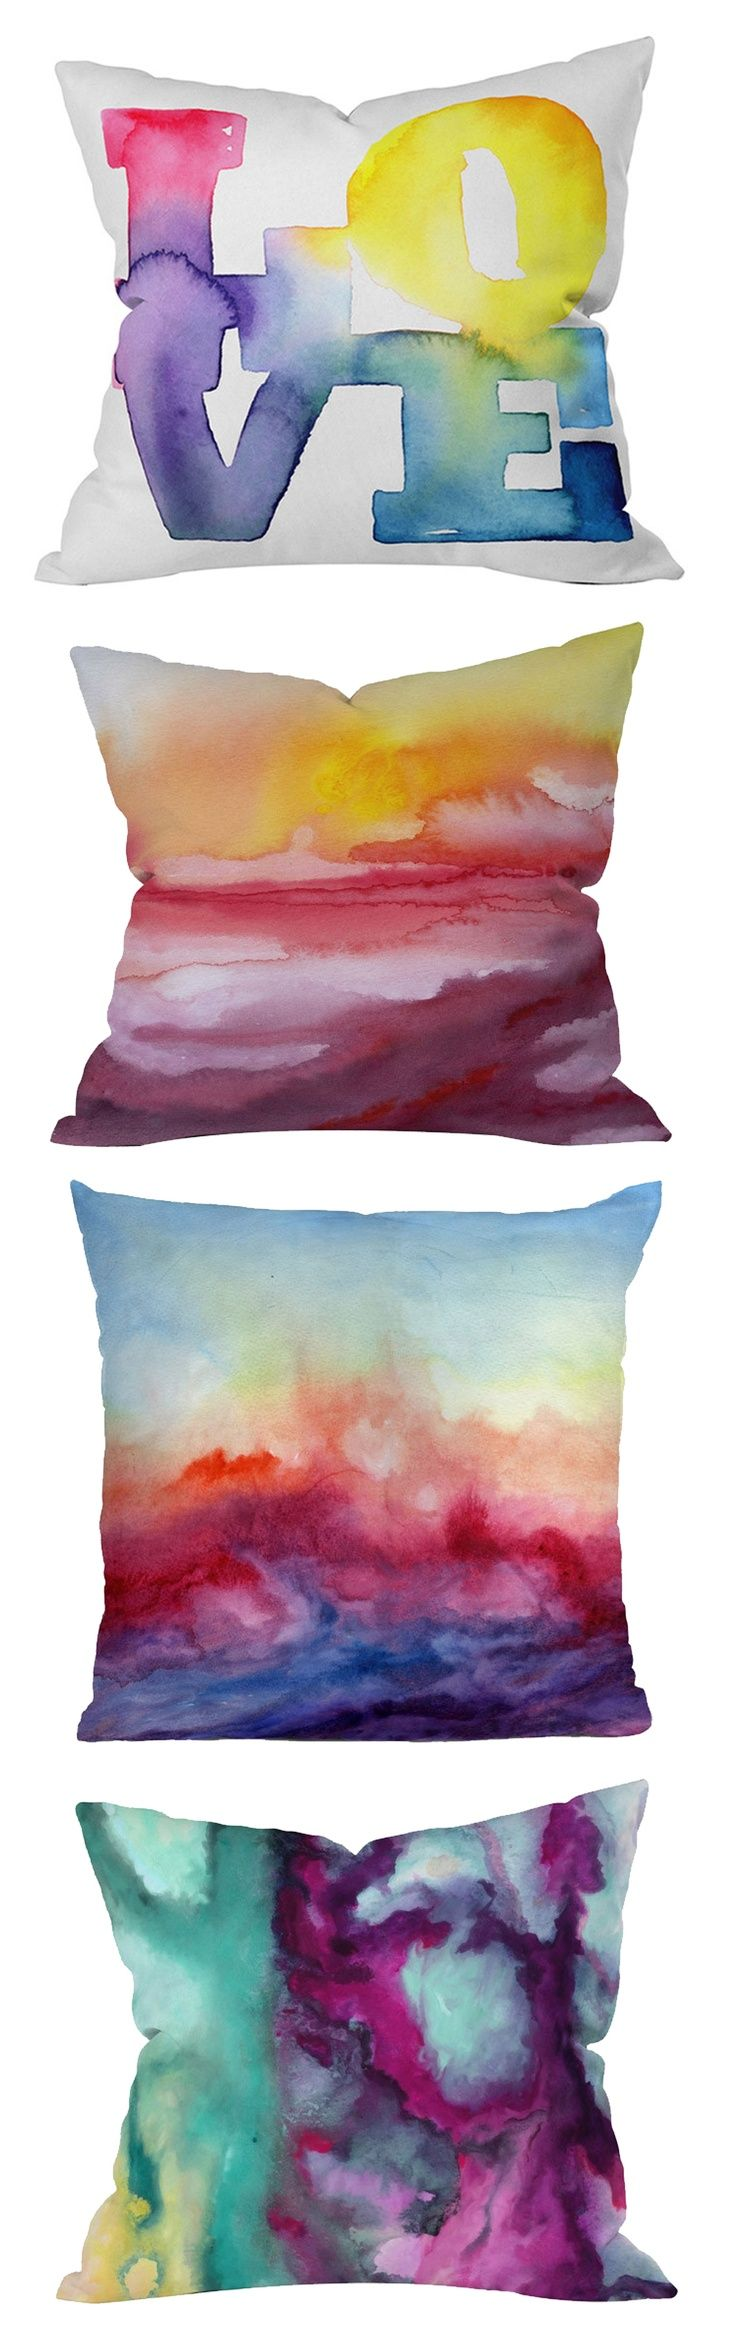 I'm going to try my hand at DIY Watercolor Pillows. 50% water + 50% fabric paint = pretty pillow(s)!